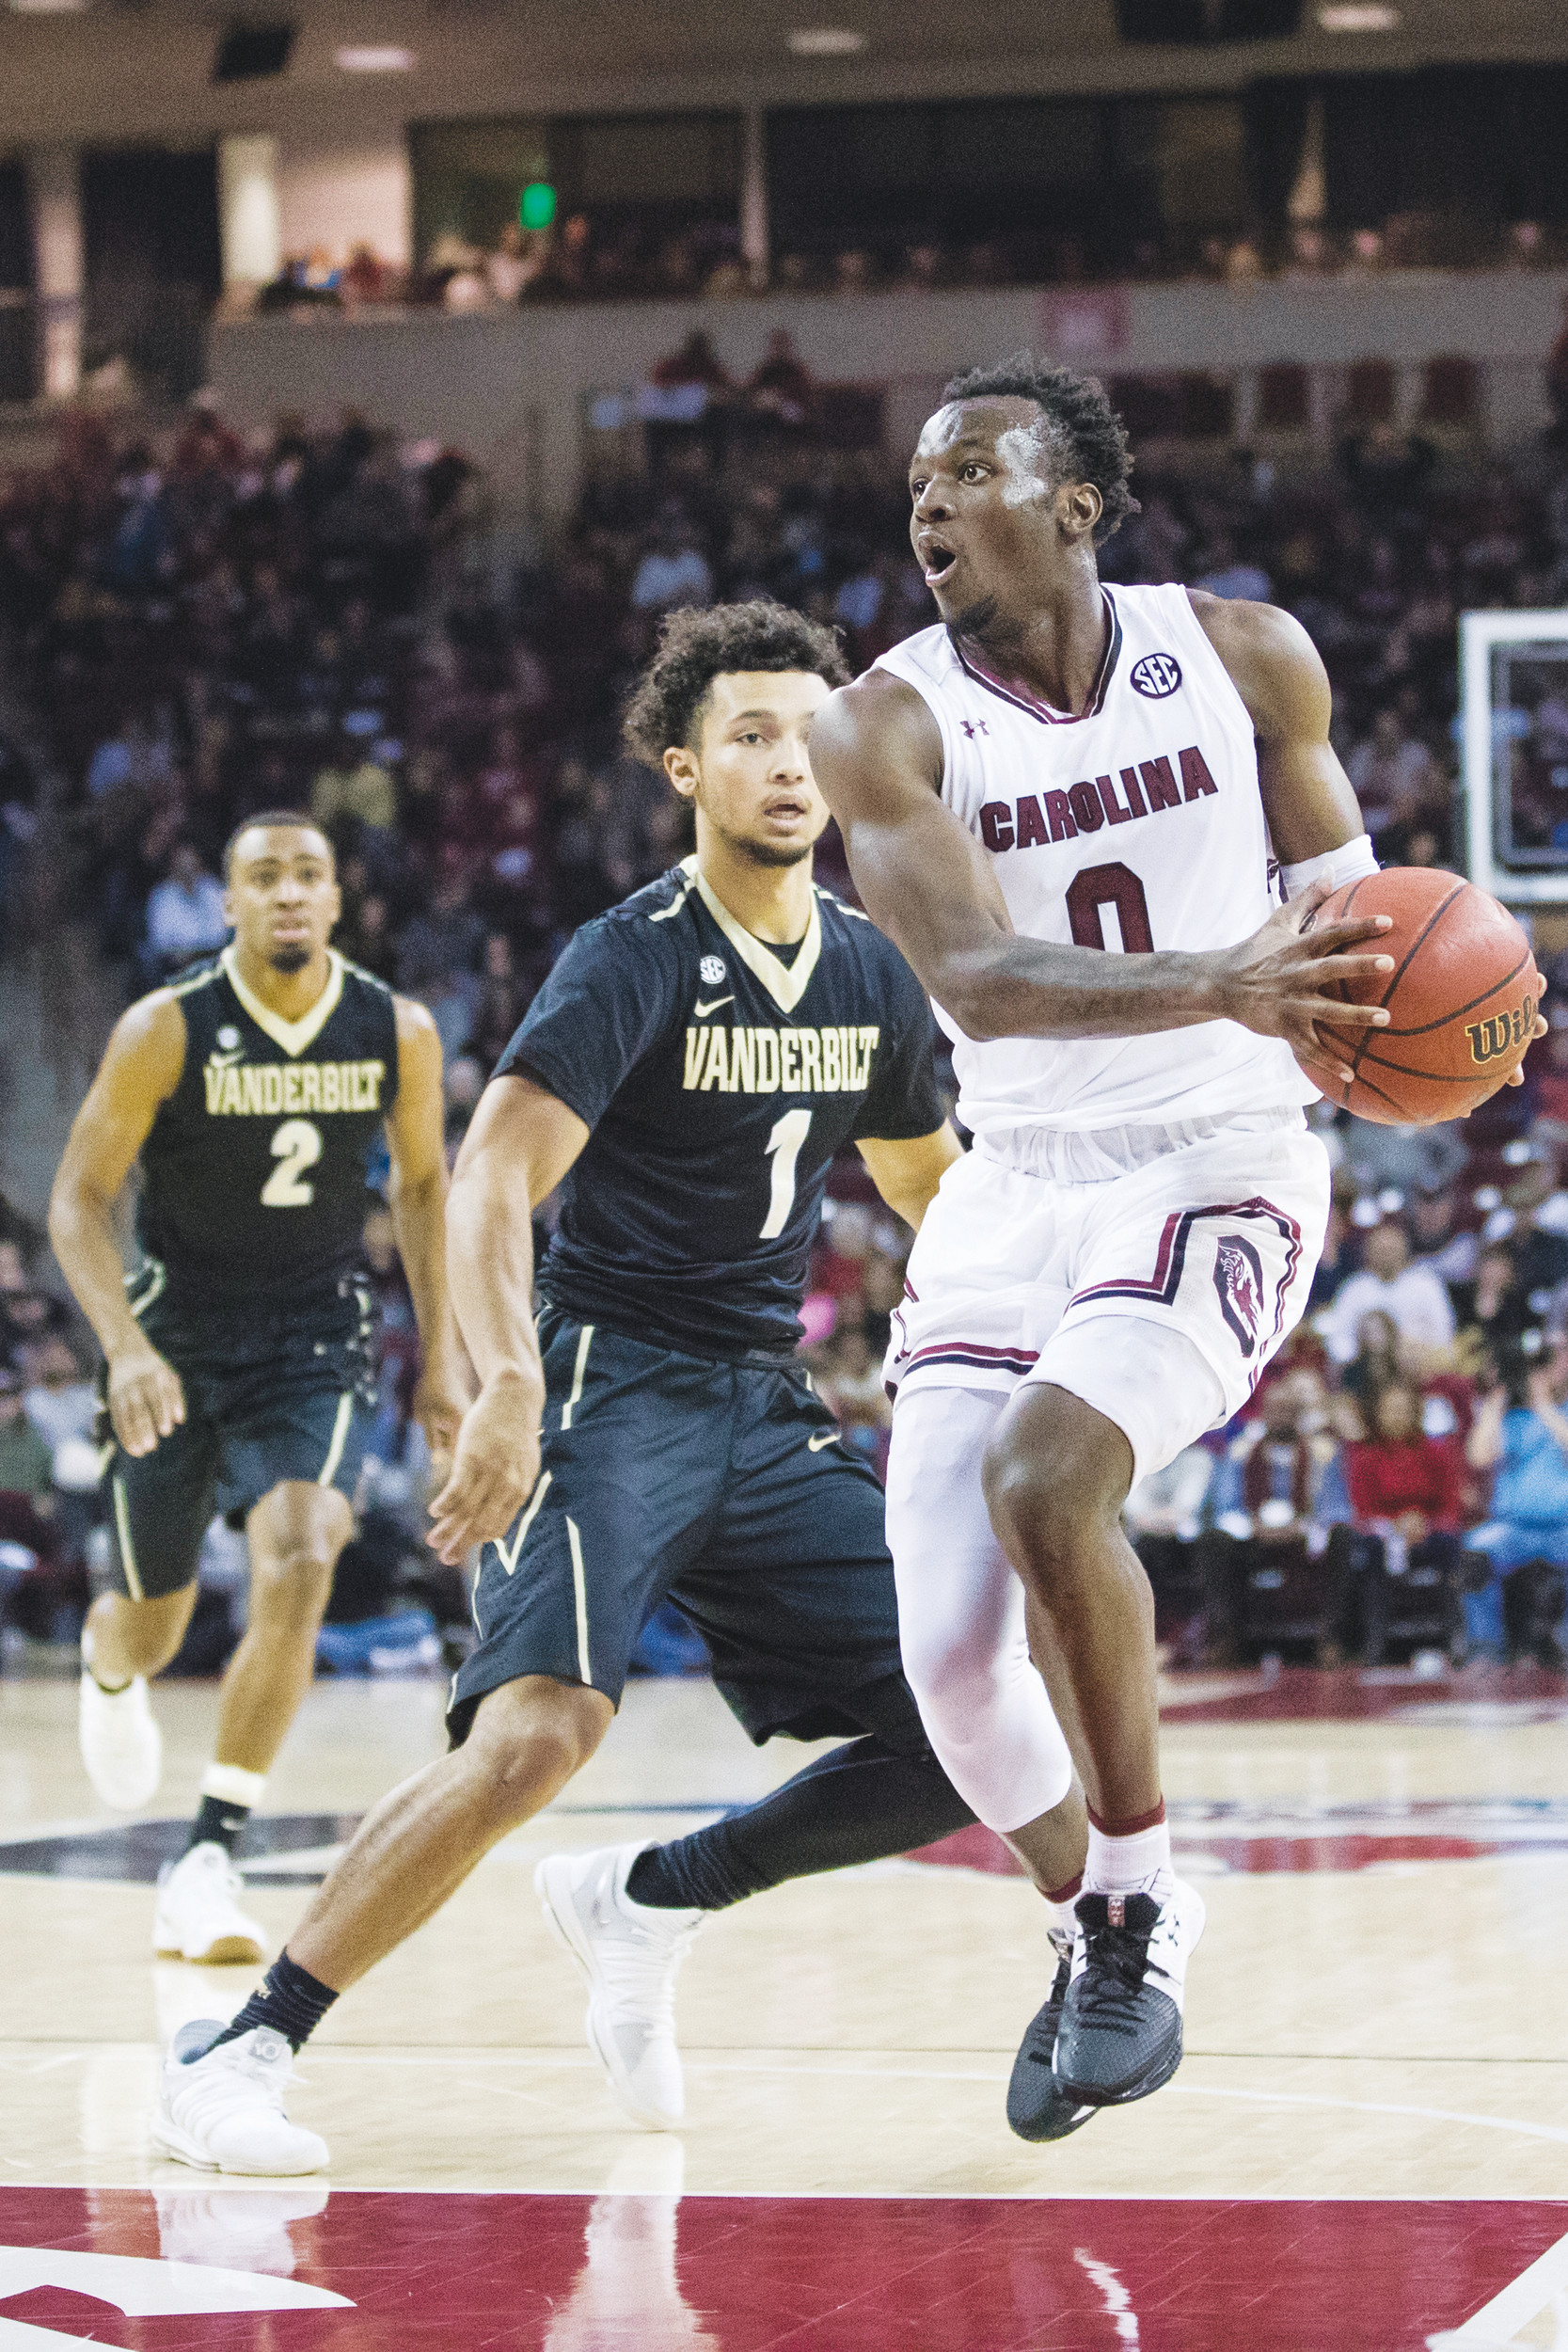 South Carolina guard David Beatty (0) dribbles down the lane during the Gamecocks' victory over Vanderbilt on Saturday in Columbia.